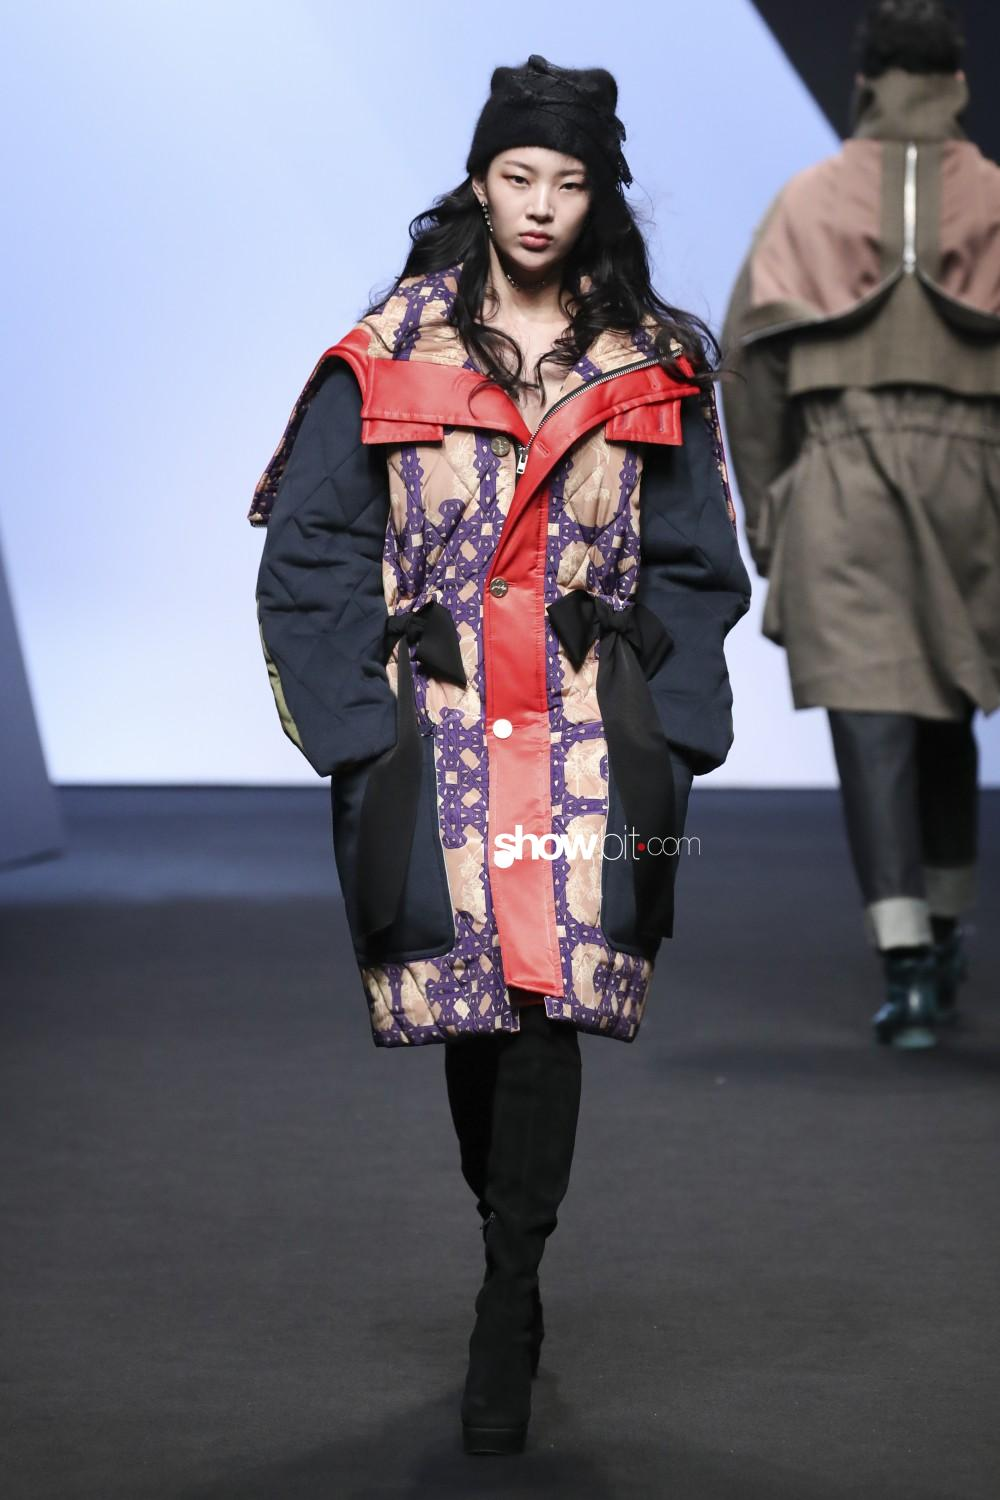 Big Park Women Fall Winter 2019 2020 Seoul